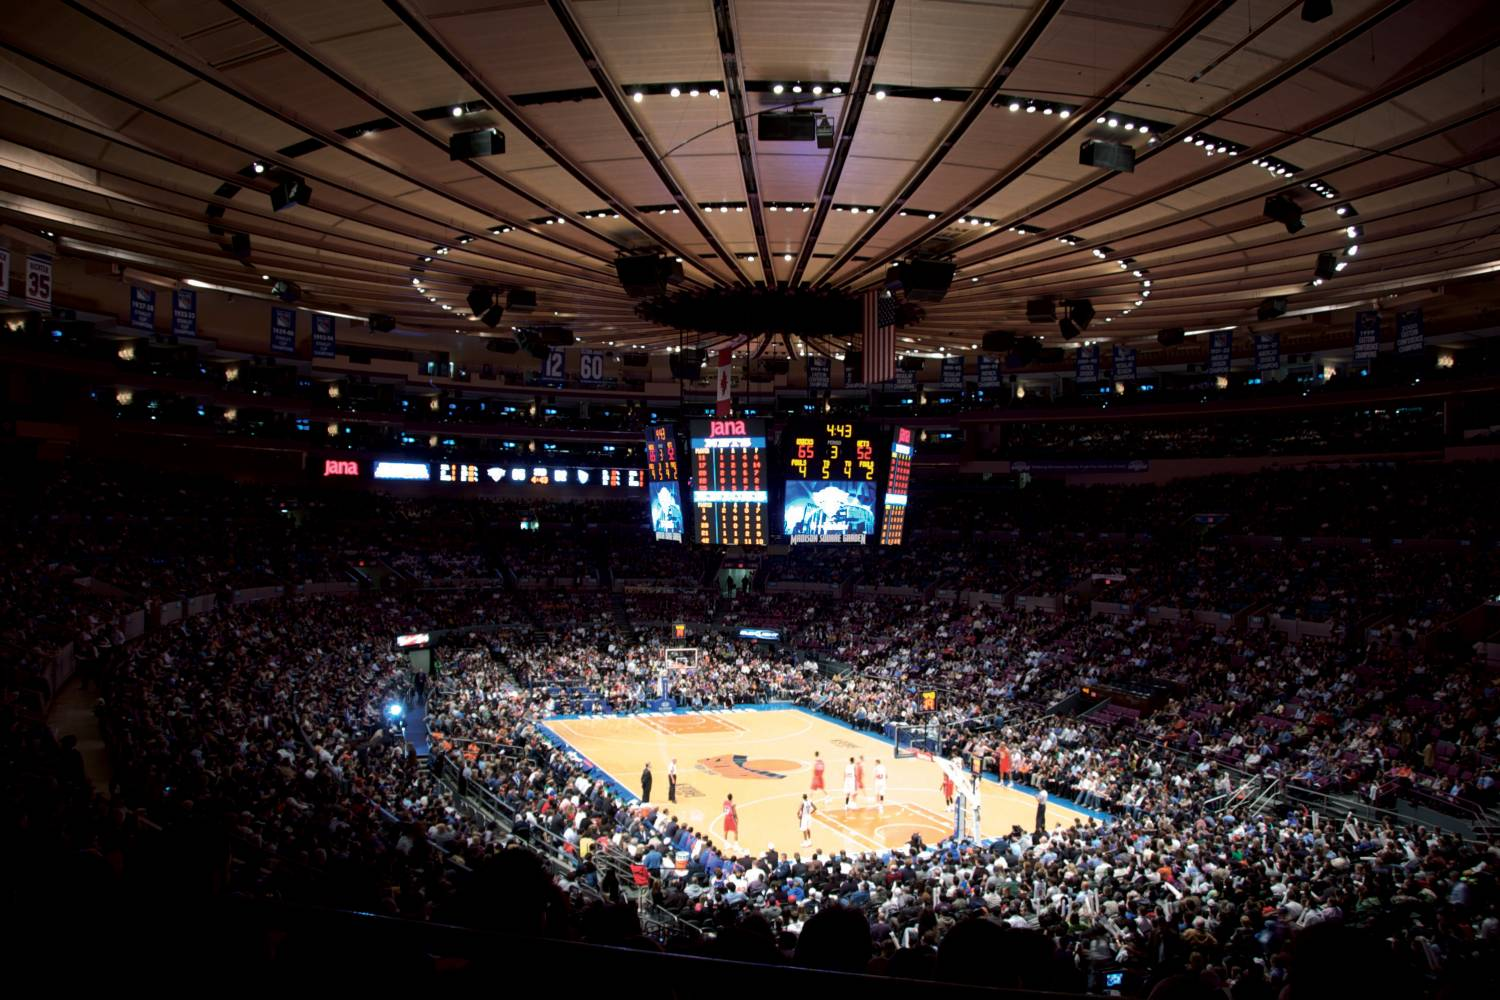 """In July 2013, lMadison Square Garden, home to the Knicks, the Rangers, the Ice Capades, the circus and the """"Fight of the Century"""" between Muhammad Ali and Joe Frazier in 1971, received an eviction notice of sorts on Wednesday. The New York City Council notified the arena that it has 10 years to vacate its 45-year-old premises and find a new home, the Garden's fifth since it opened in 1879. By a vote of 47 to 1, the Council voted to extend the Garden's special operating permit for merely a decade — not in perpetuity, as the owners of the Garden had requested, or 15 years, as the Bloomberg administration had intended. (   Source: The New York Times   )"""